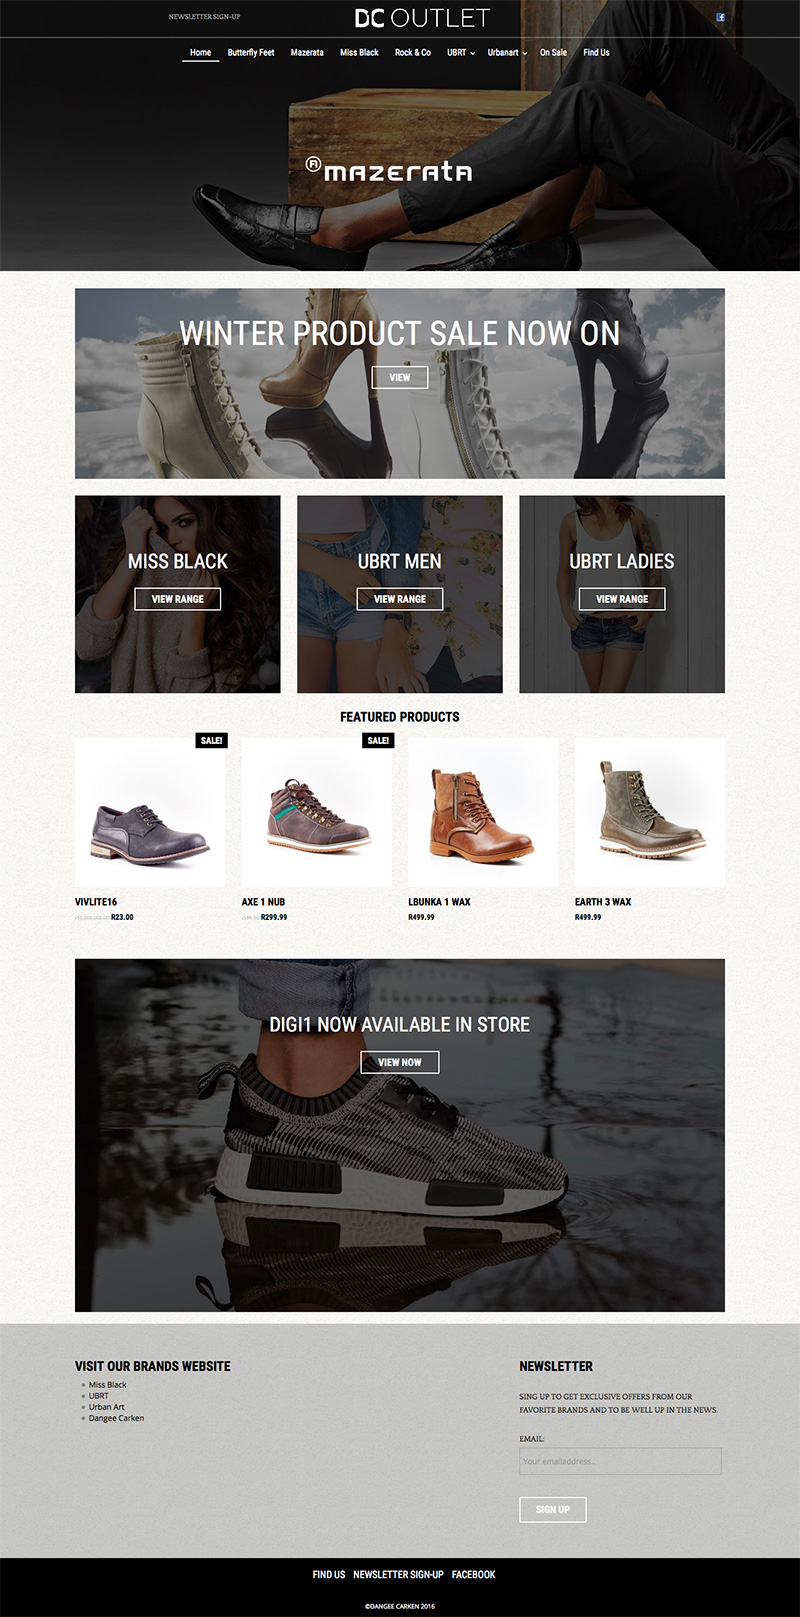 DC1 Outlet Online Store